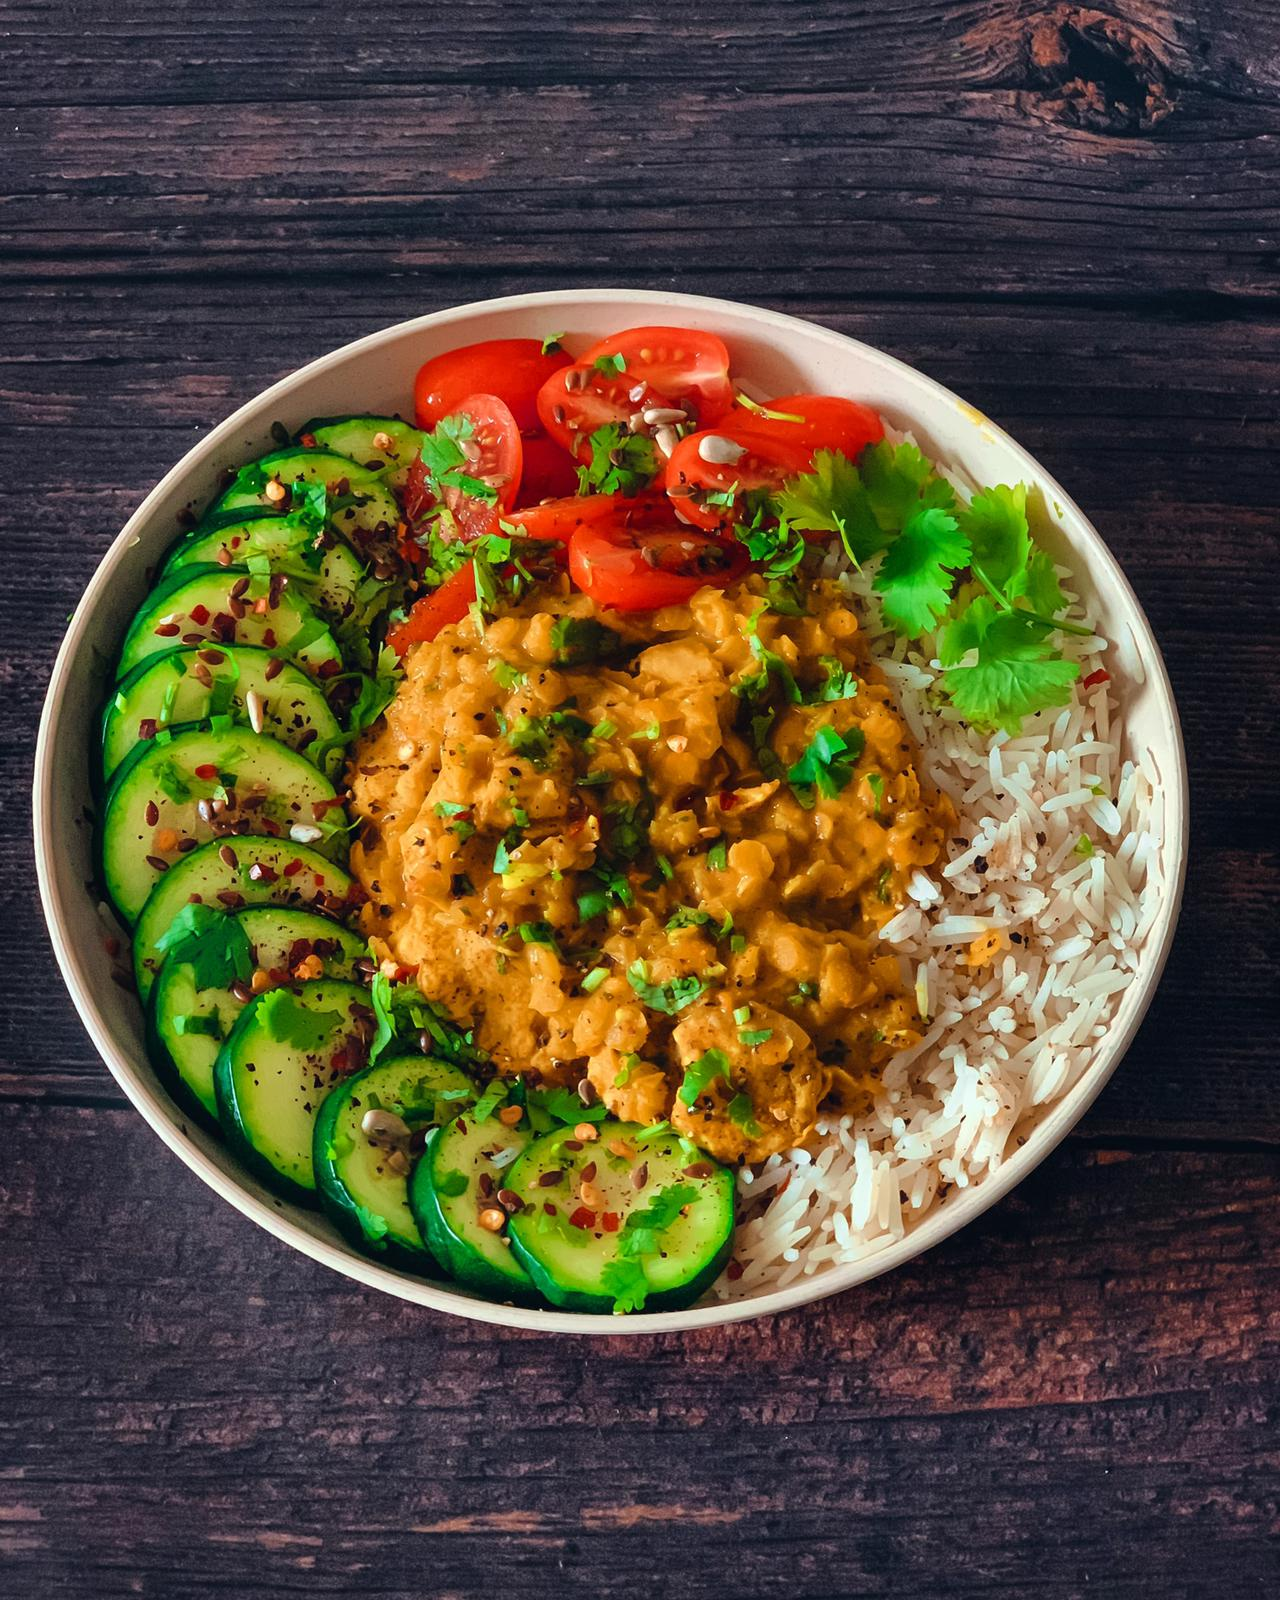 Chicken and lentil curry with coconut milk - somiigbene|1